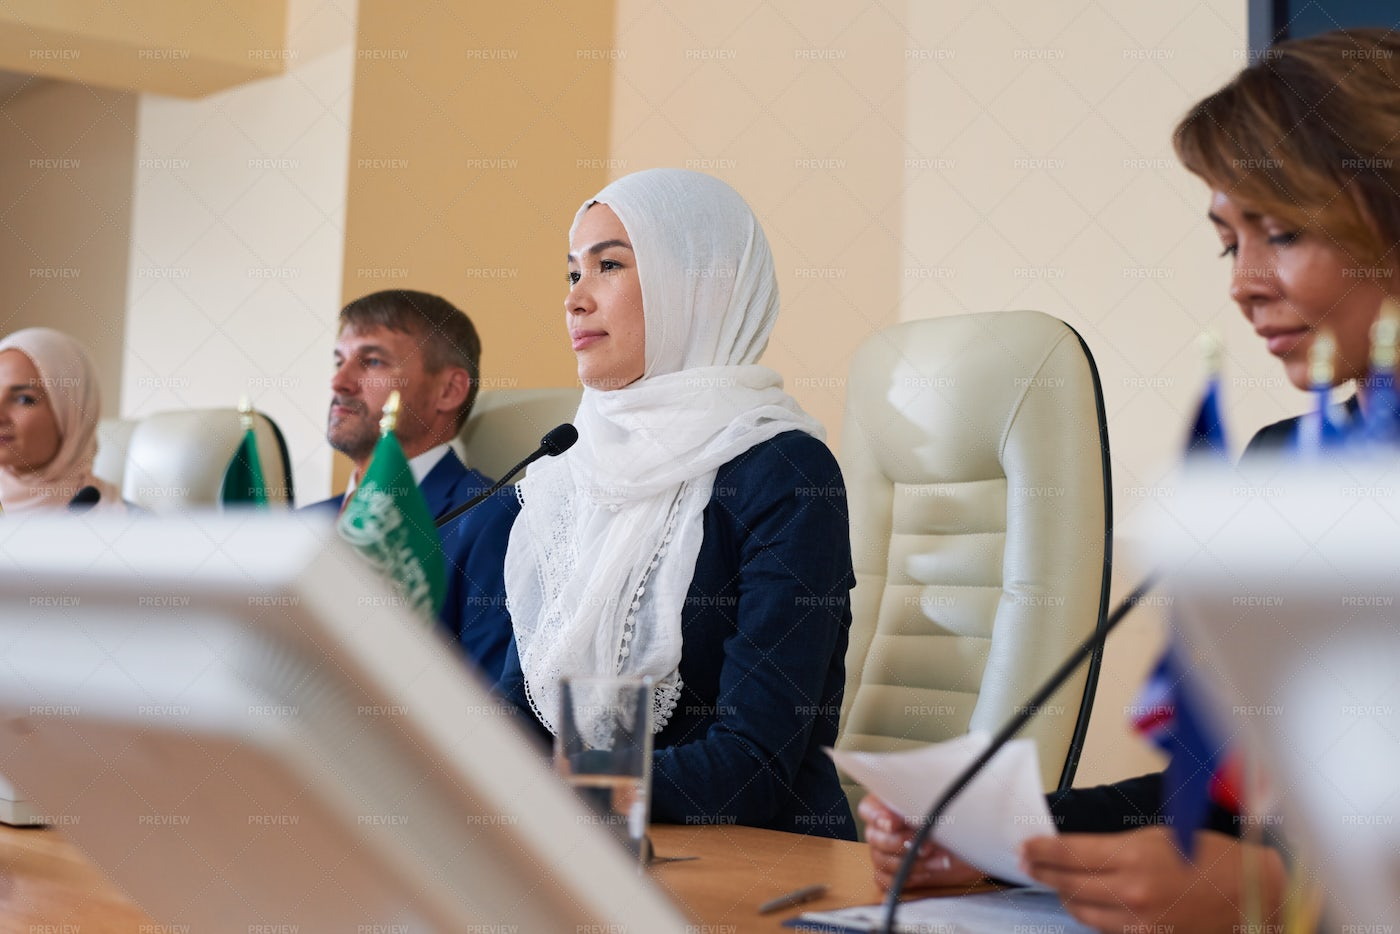 Muslim Speaker At Conference: Stock Photos